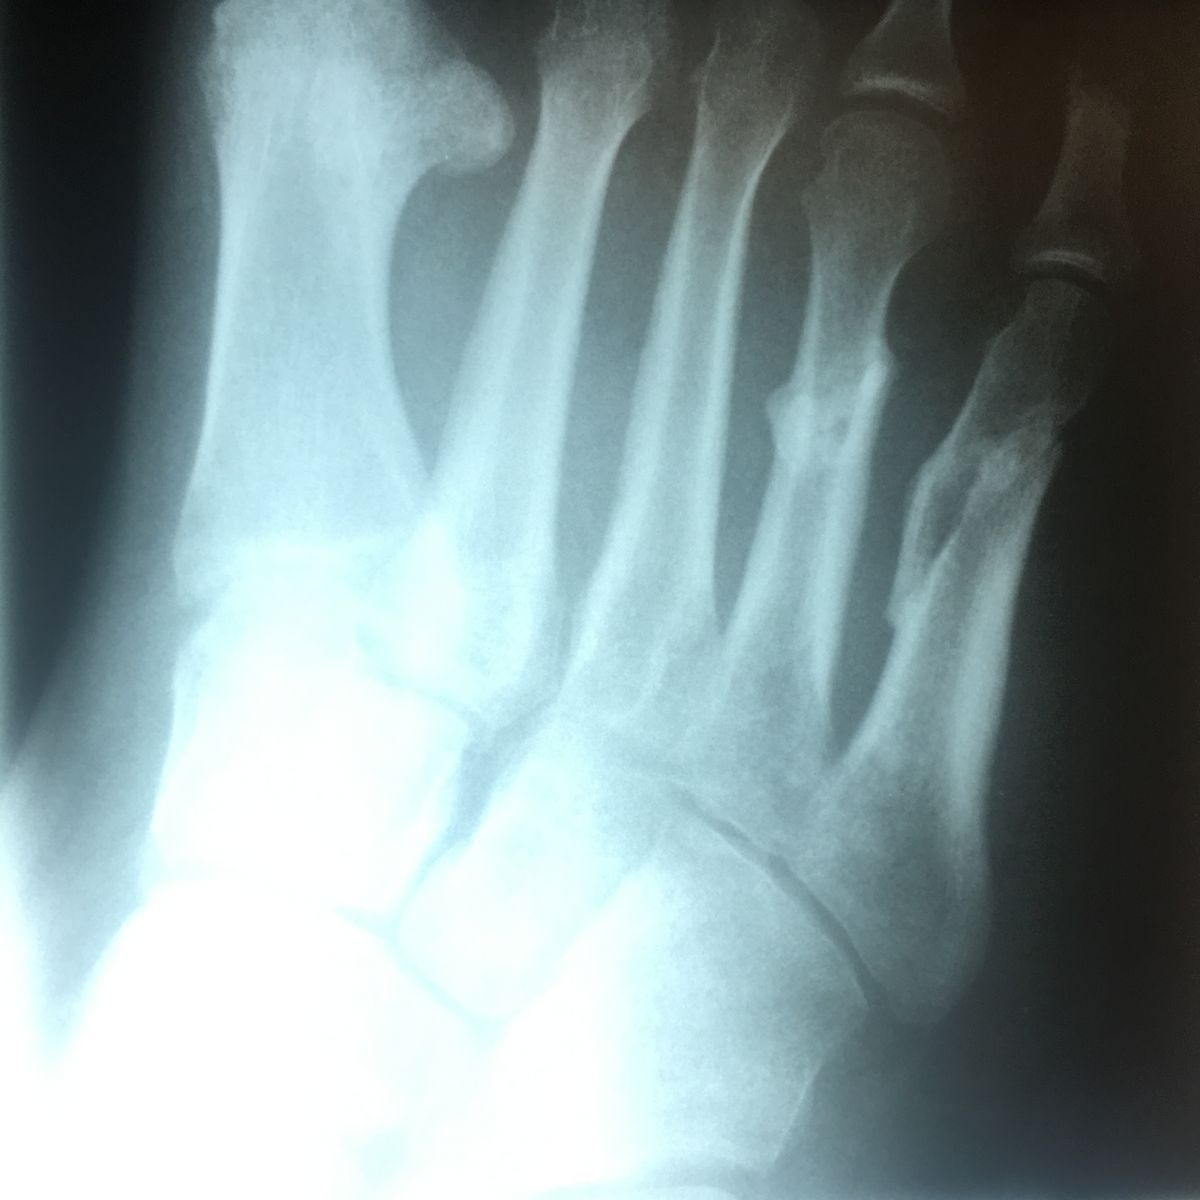 Metatarsal Fractures Continued - Podiatry, Orthopedics